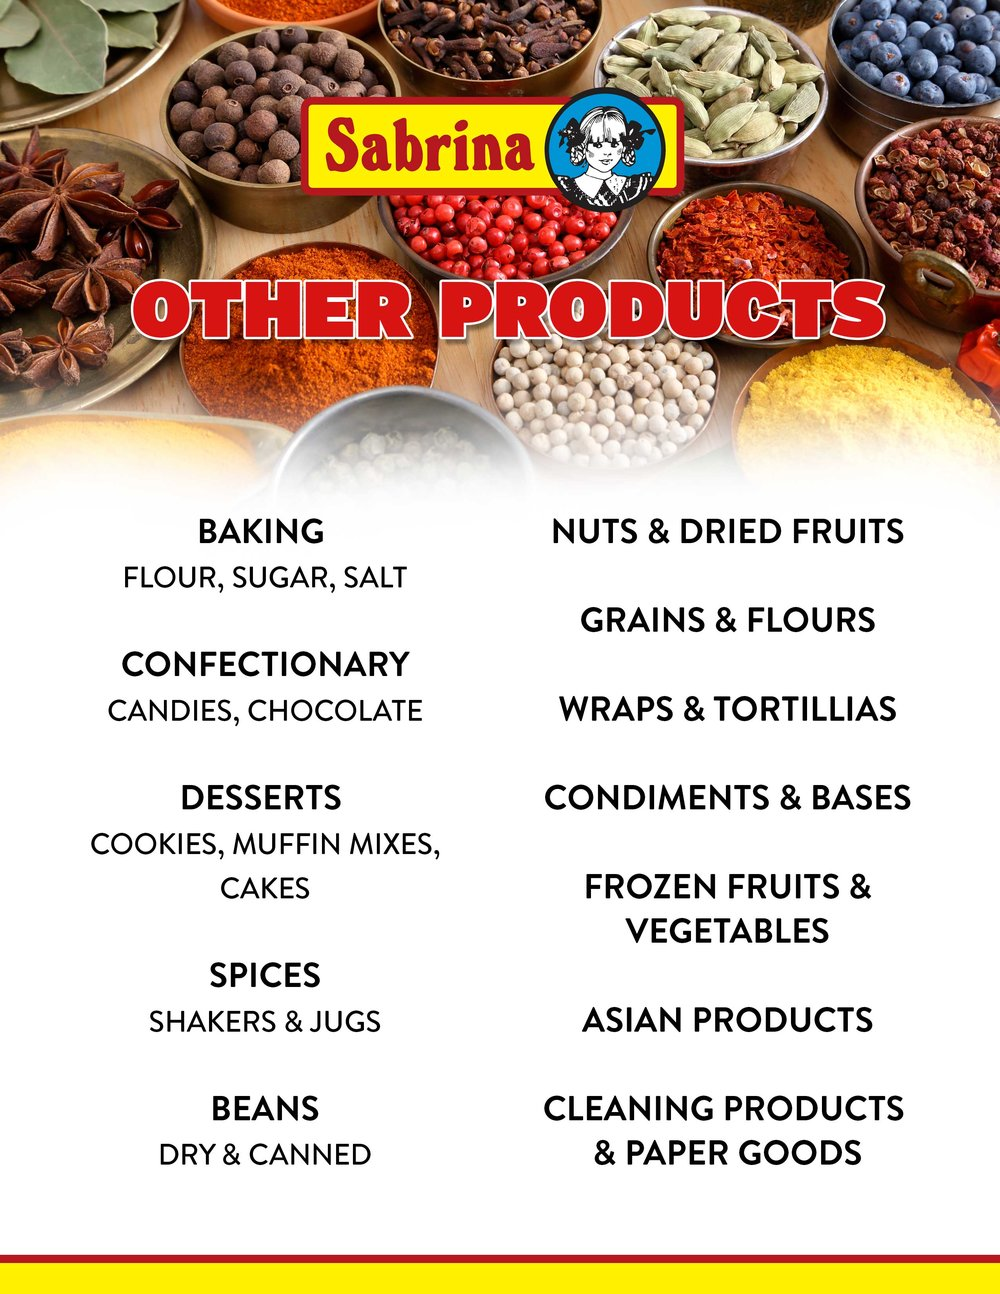 OTHER-PRODUCTS-sell-sheet.jpg